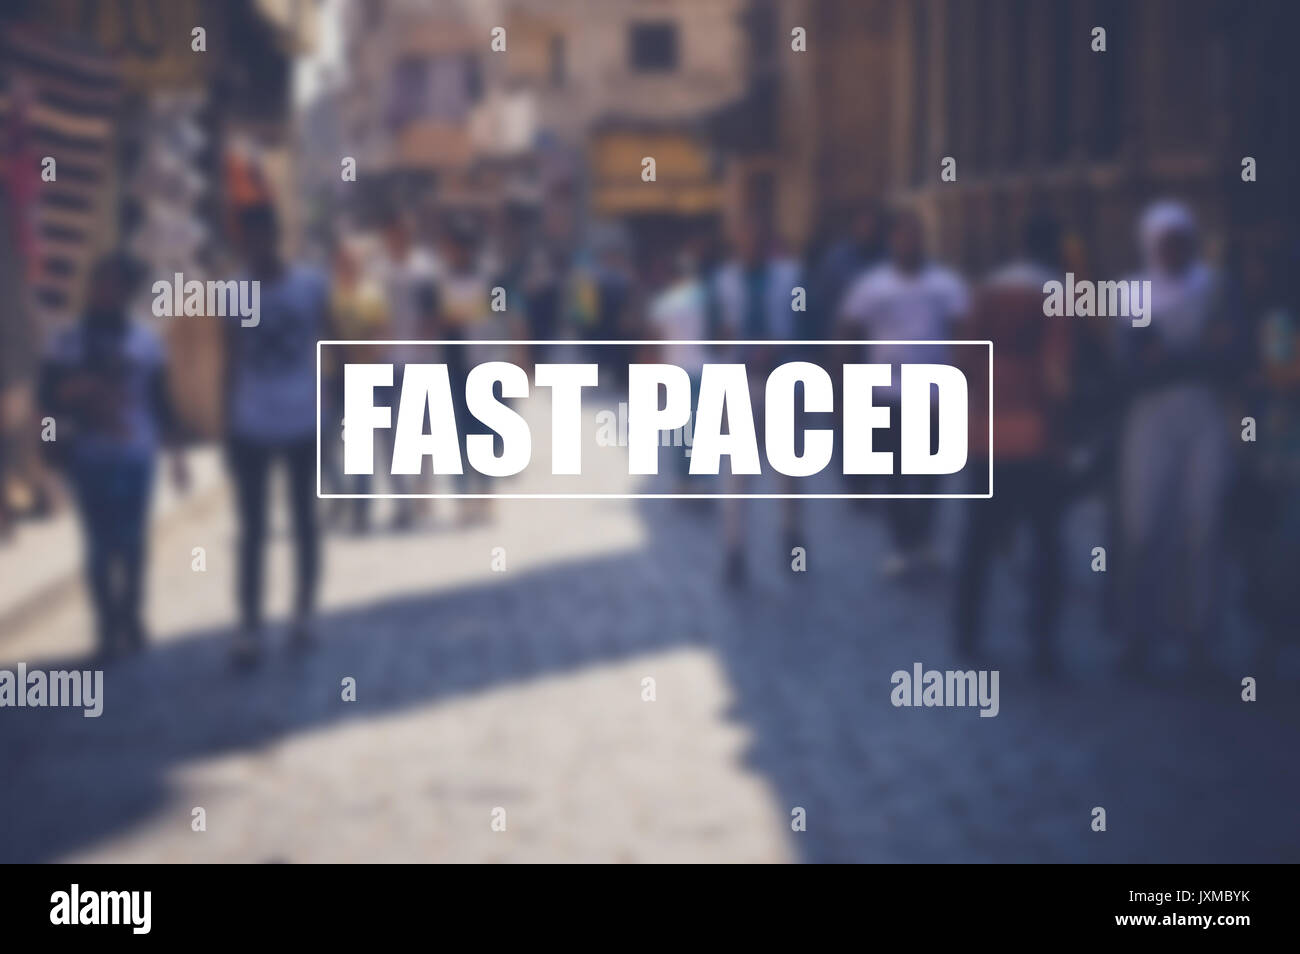 fast paced concept background - Stock Image